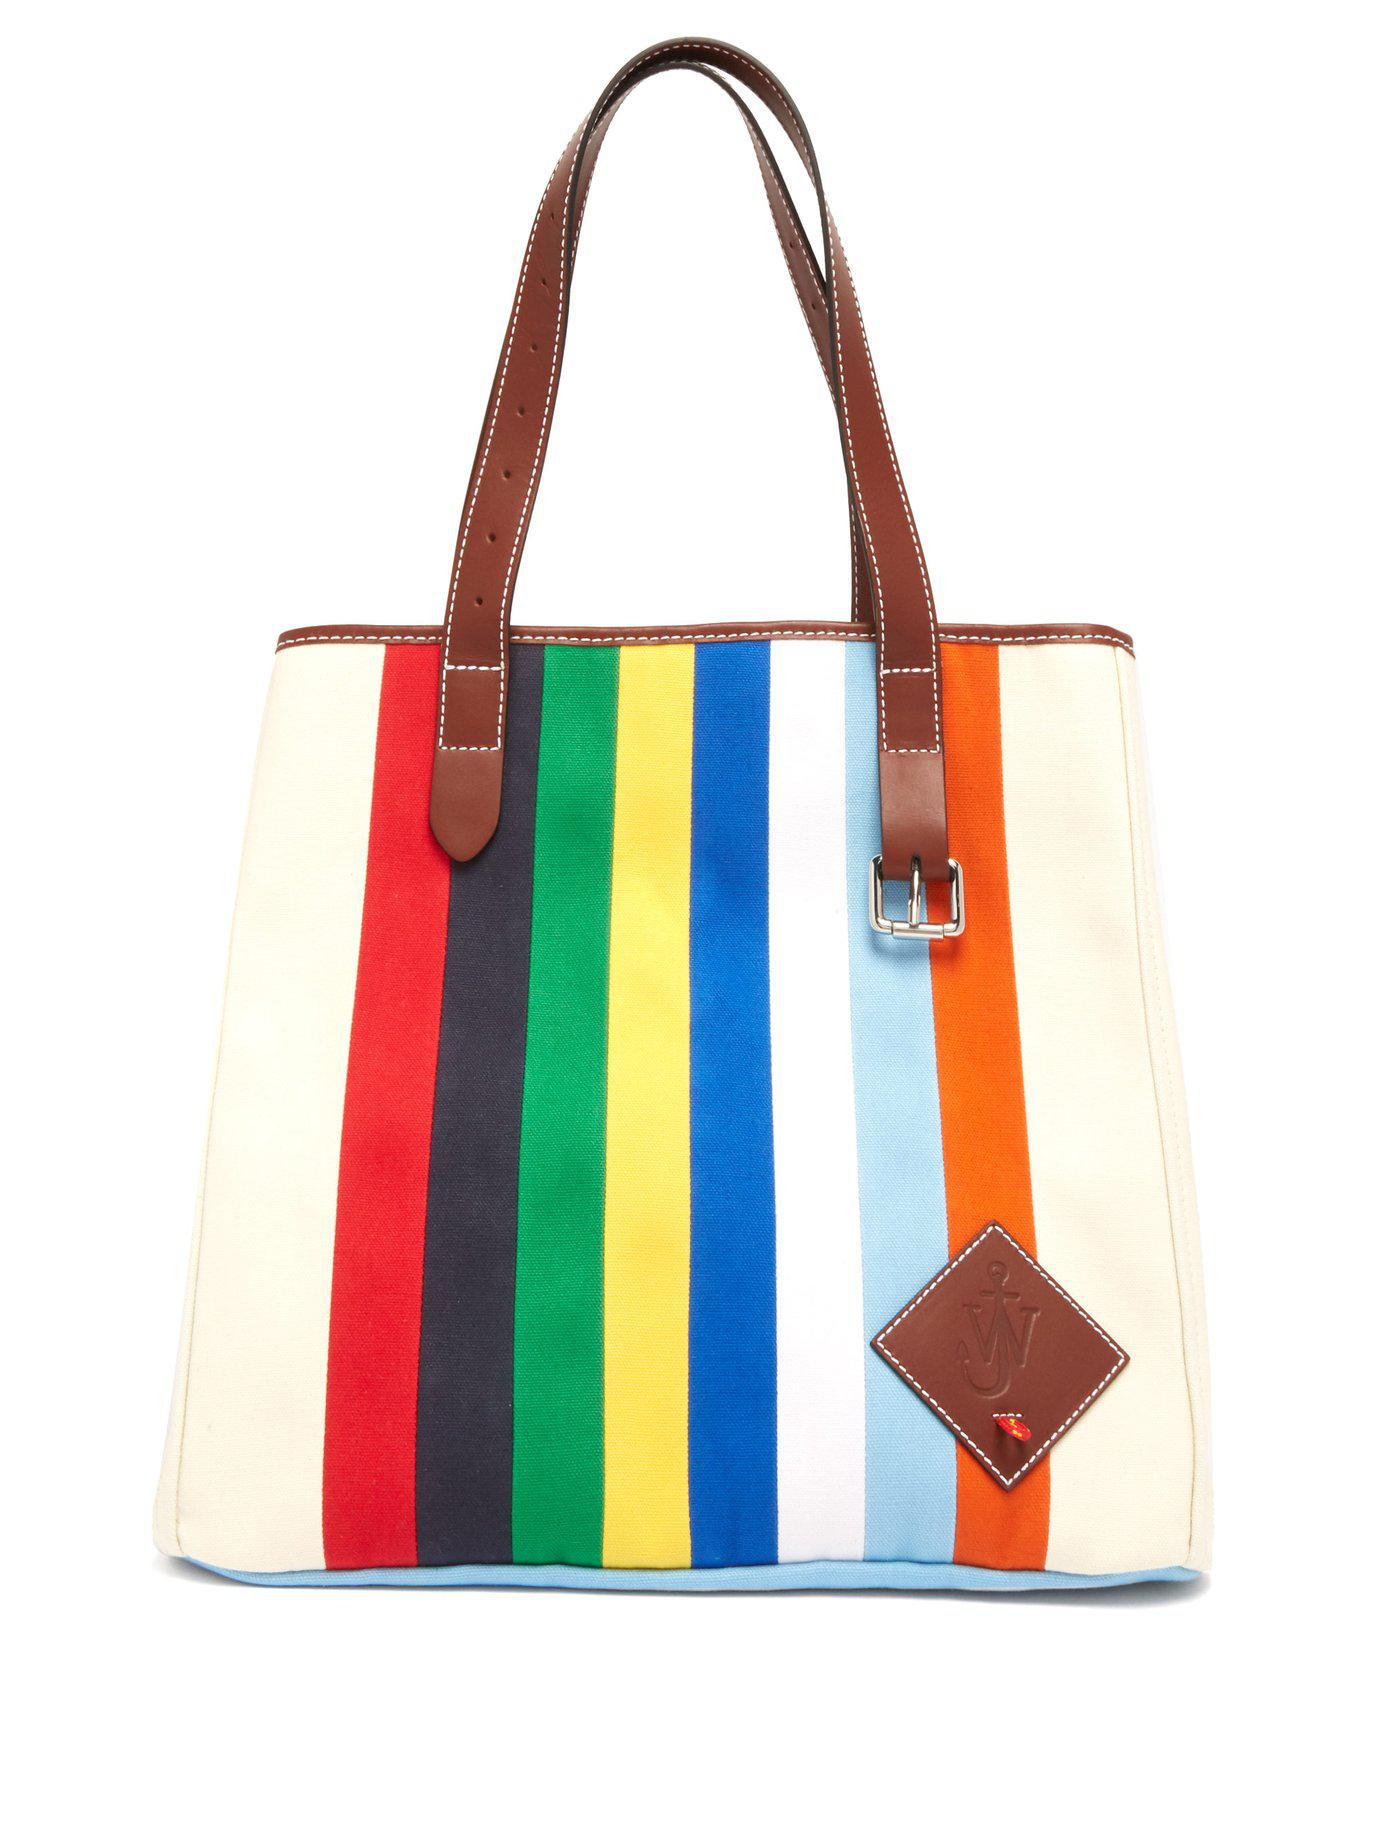 Lyst - JW Anderson Striped Canvas Tote Bag for Men f968b791db5d2